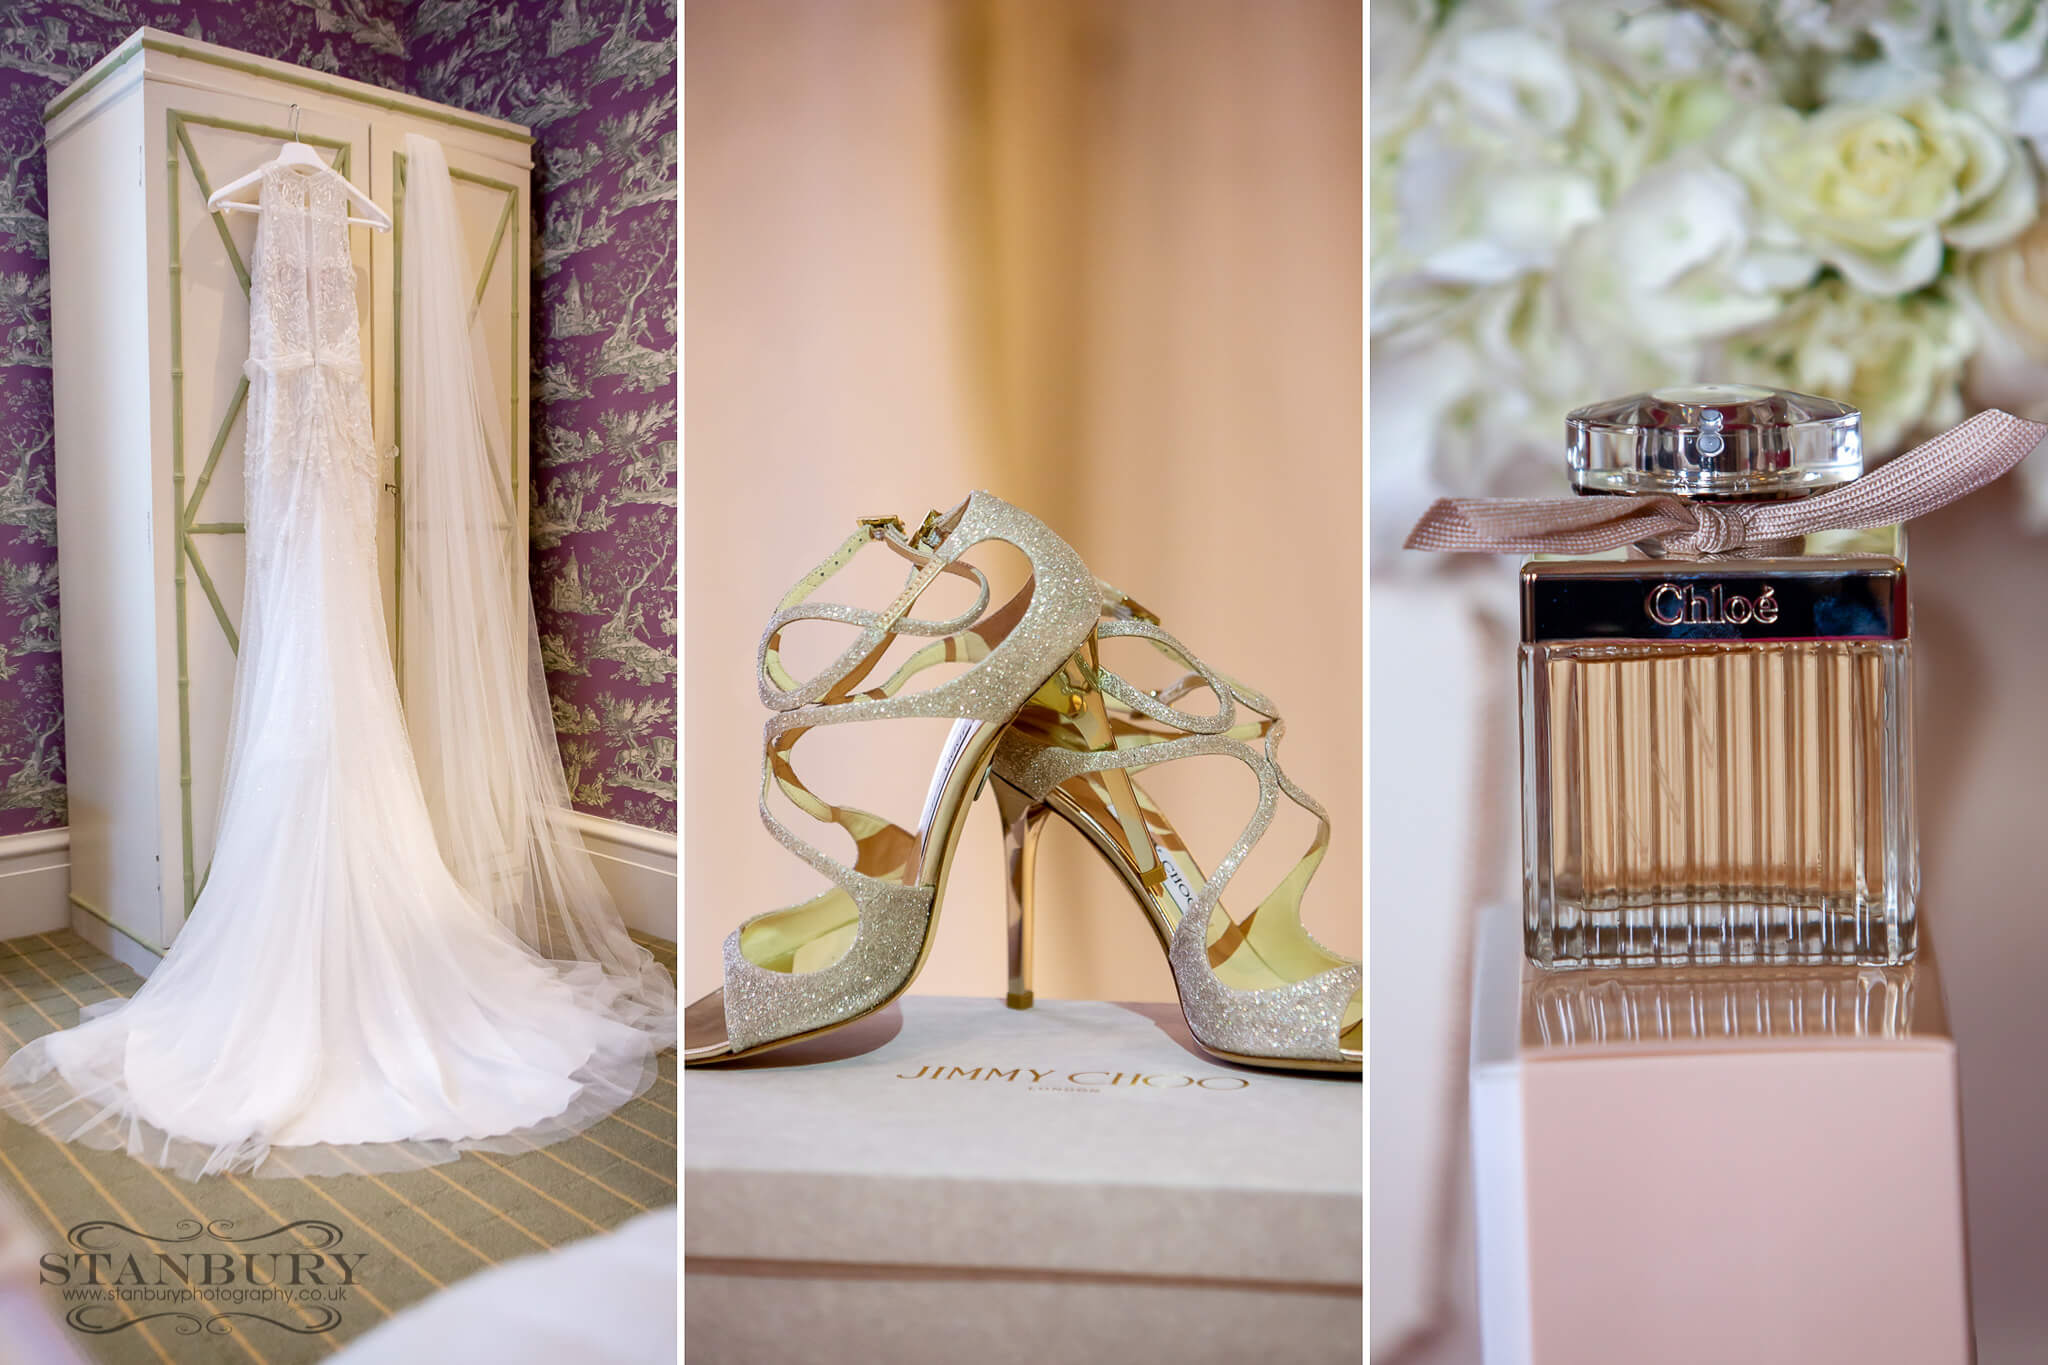 knowsley-hall-wedding-stanbury-photography-005